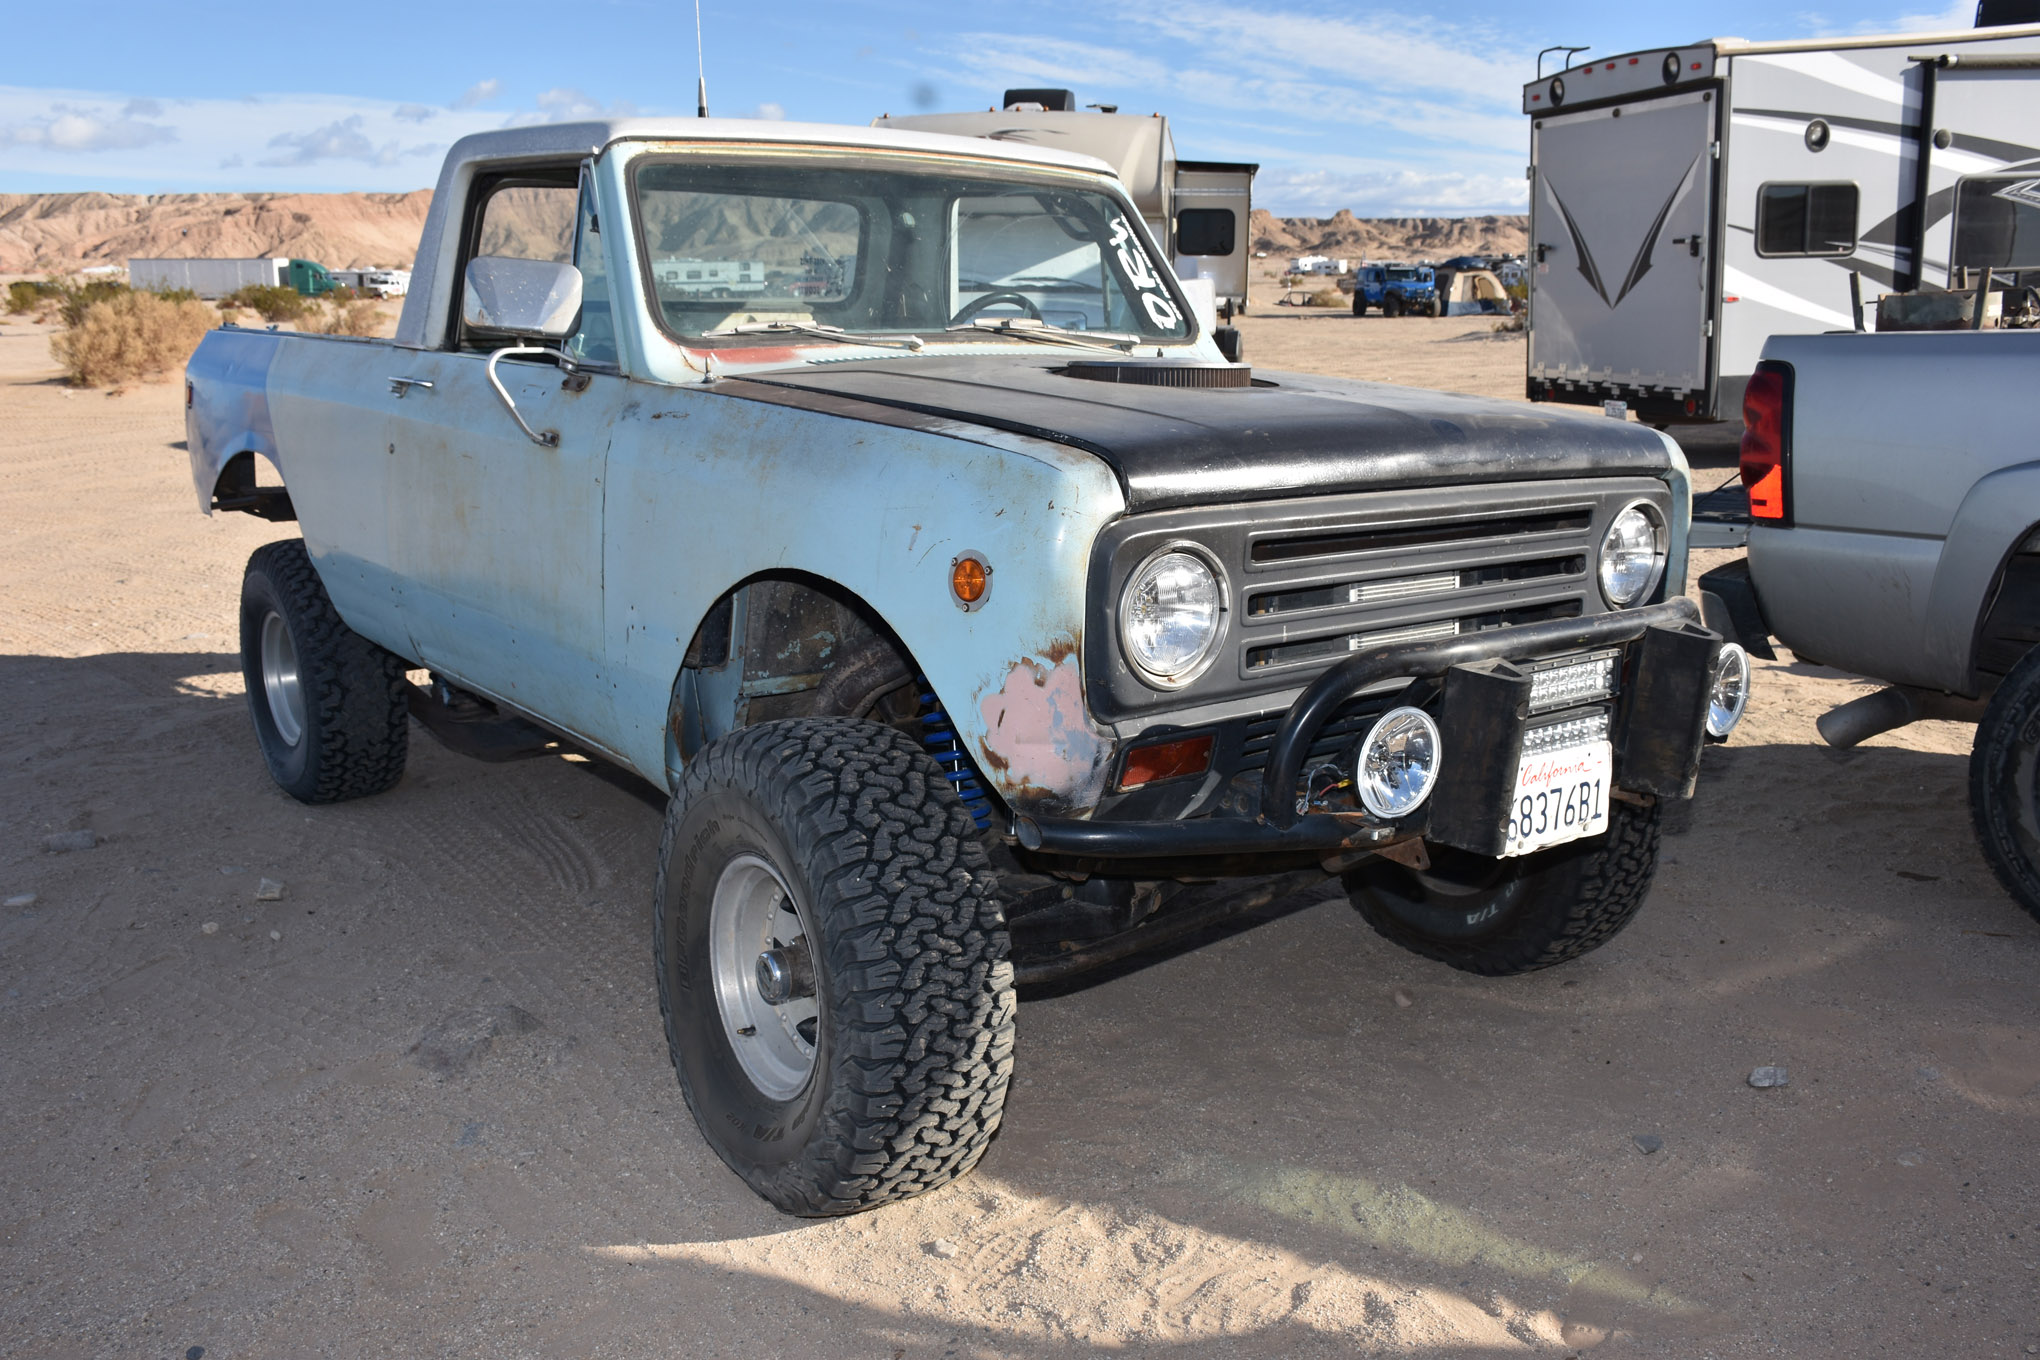 Speaking of vintage iron, check out this International Scout Traveler. The truck is powered by a 345ci tractor engine backed by a TF727 transmission. The suspension is built to go fast with a trick TTB front axle and a five-lug Dana 60 rear. Have a good long look at that front axle and see if you can figure out what makes that particular TTB axle very unique (hint: we're not talking about the custom steering).